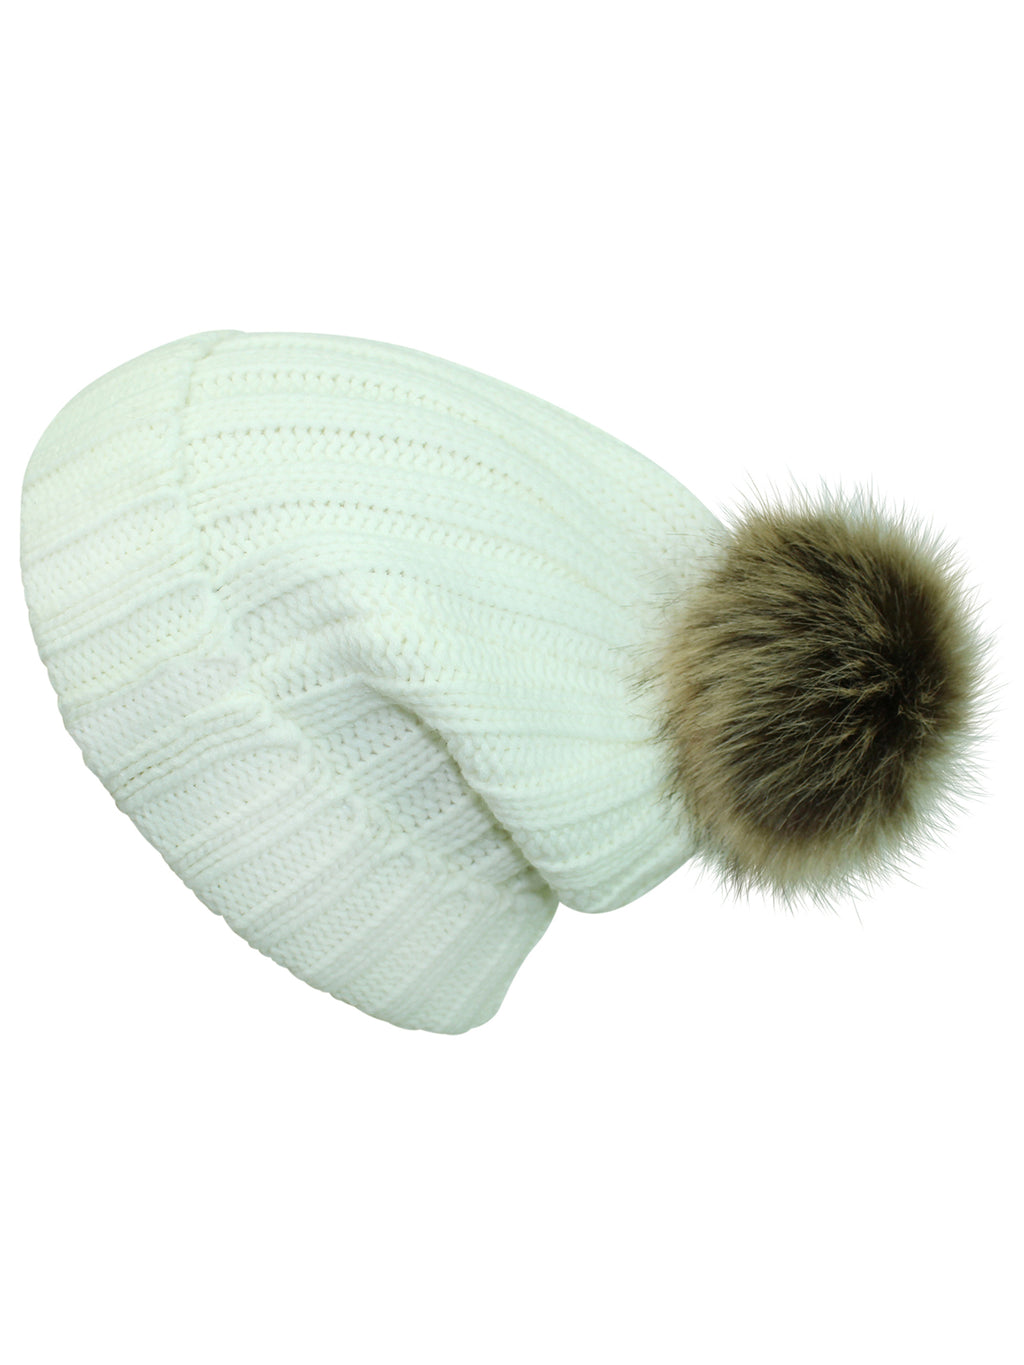 Posh Ribbed Knit Pom Pom Beanie Hat